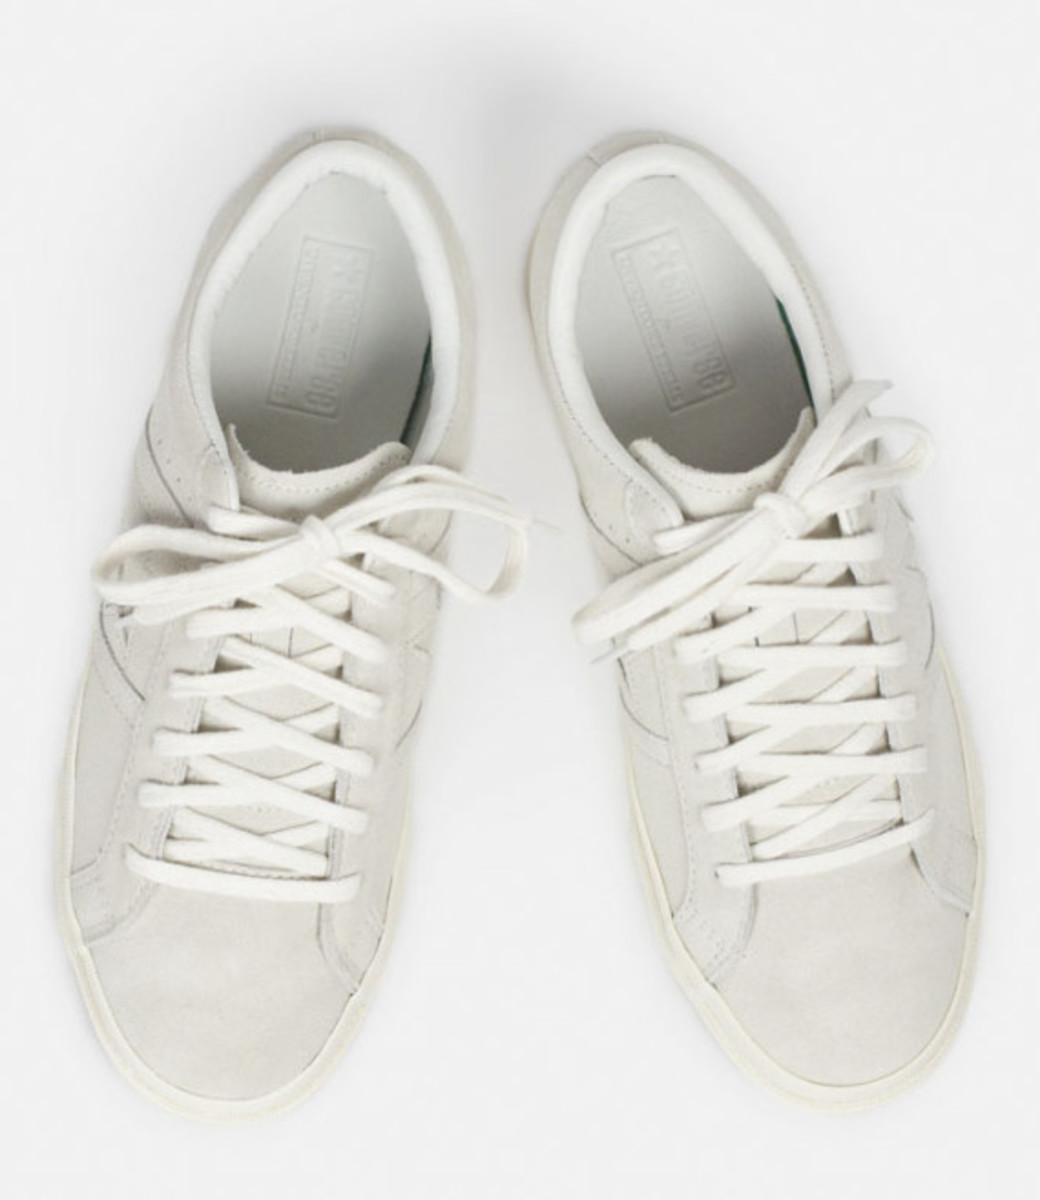 inventory-x-converse-first-string-one-star-academy-antique-white-04